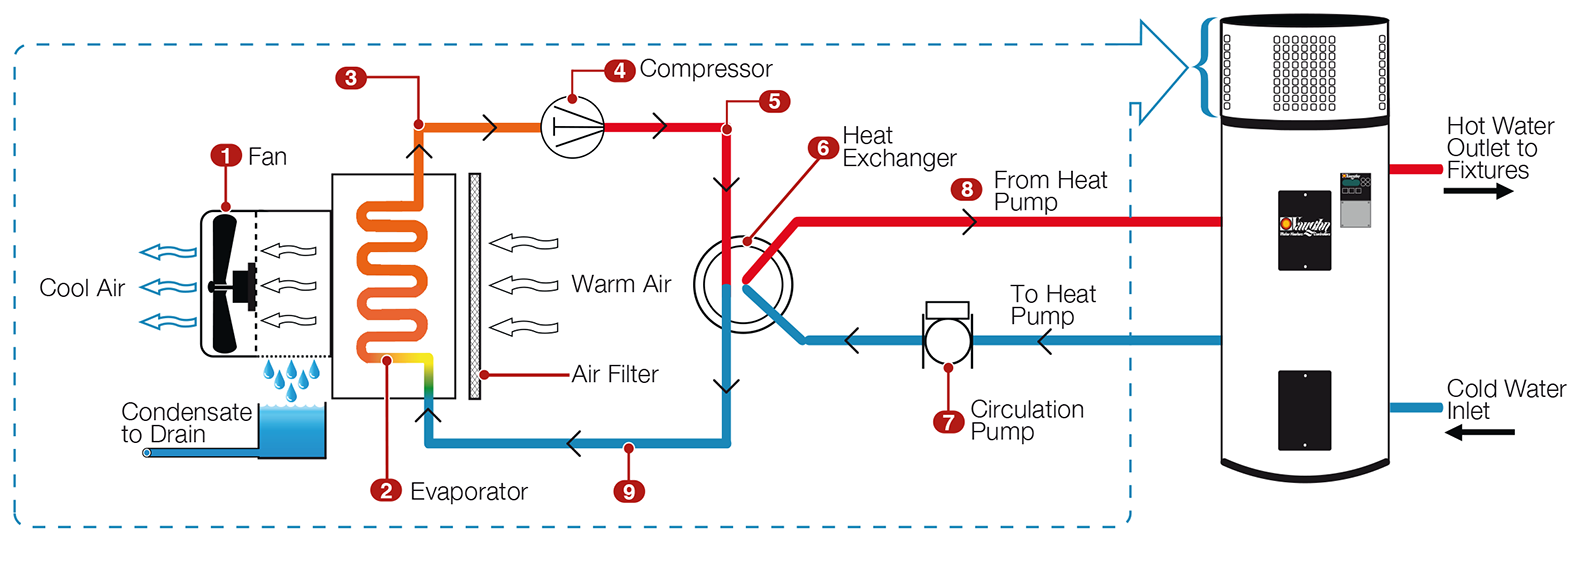 High Efficiency Electric Water Heater Vaughn Ram Air Compressor Wiring Diagram Heat Pump Operational